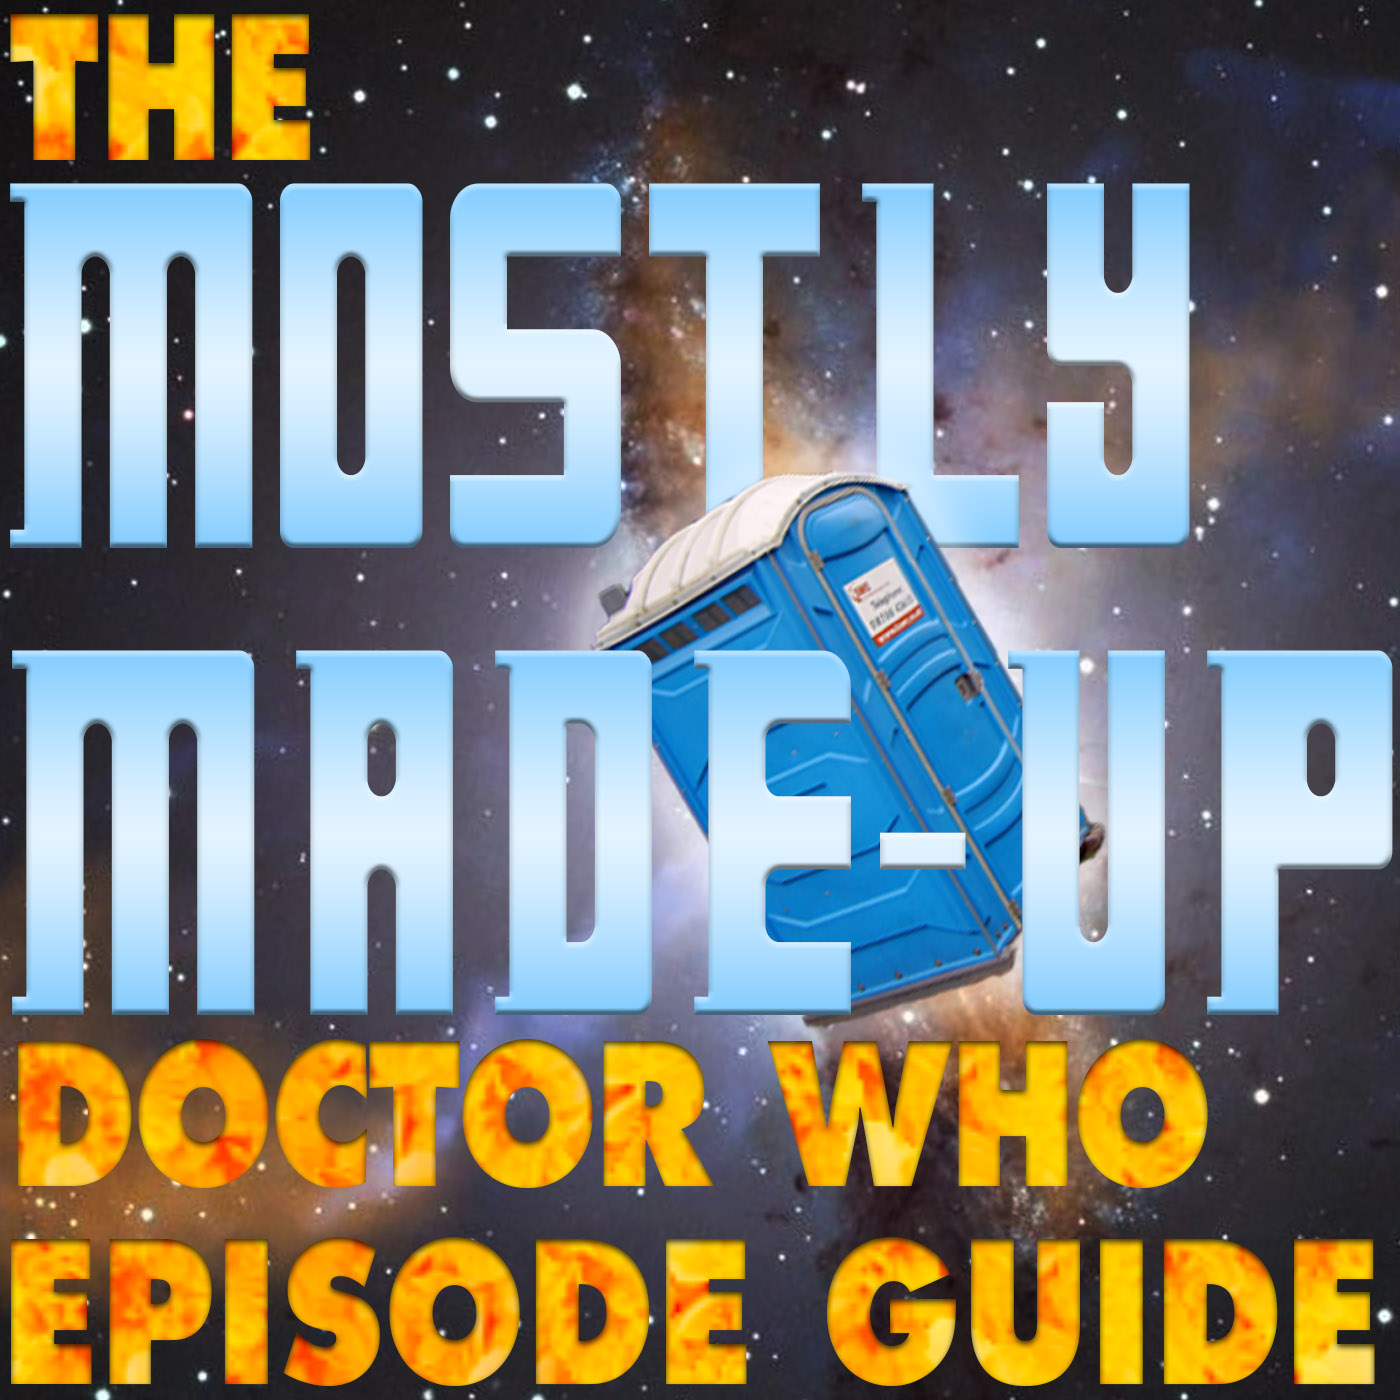 The mostly made-up doctor who episode guide the doctor who.